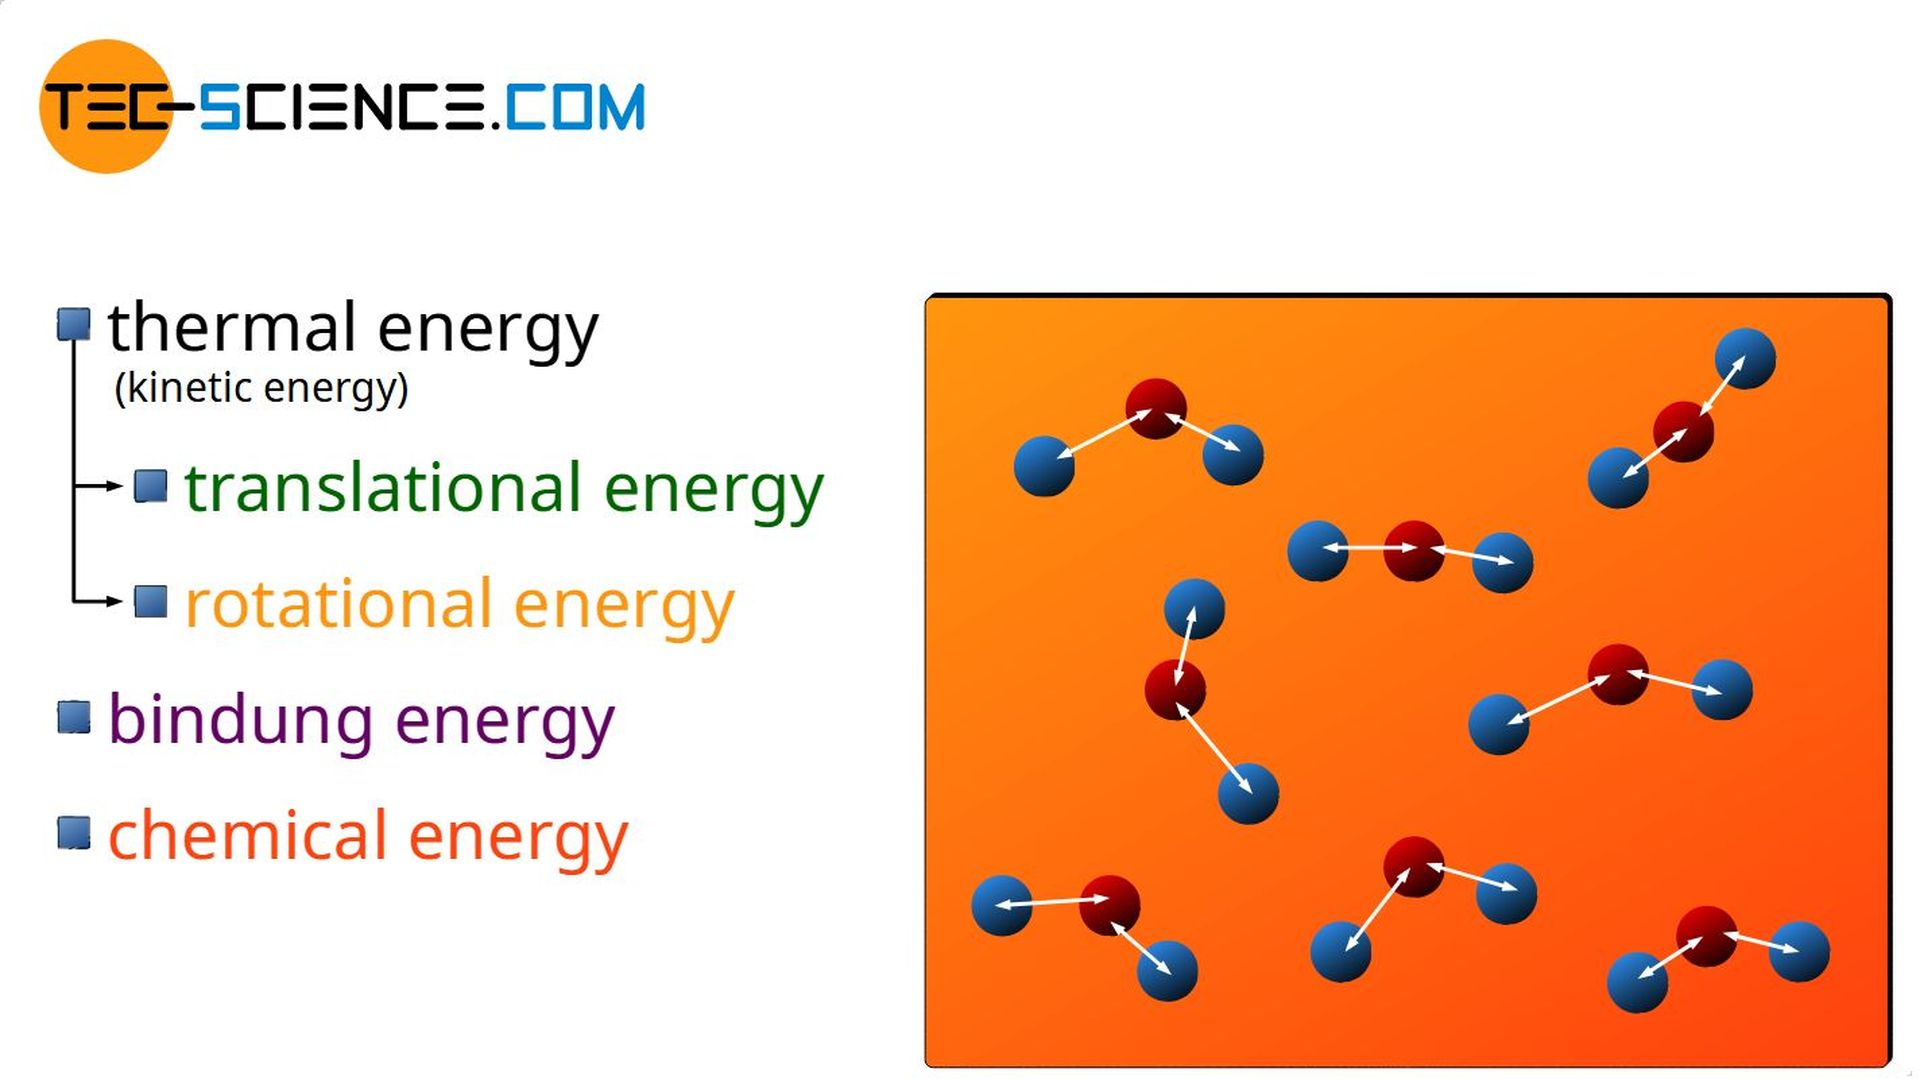 Chemical energy as part of the internal energy of a substance